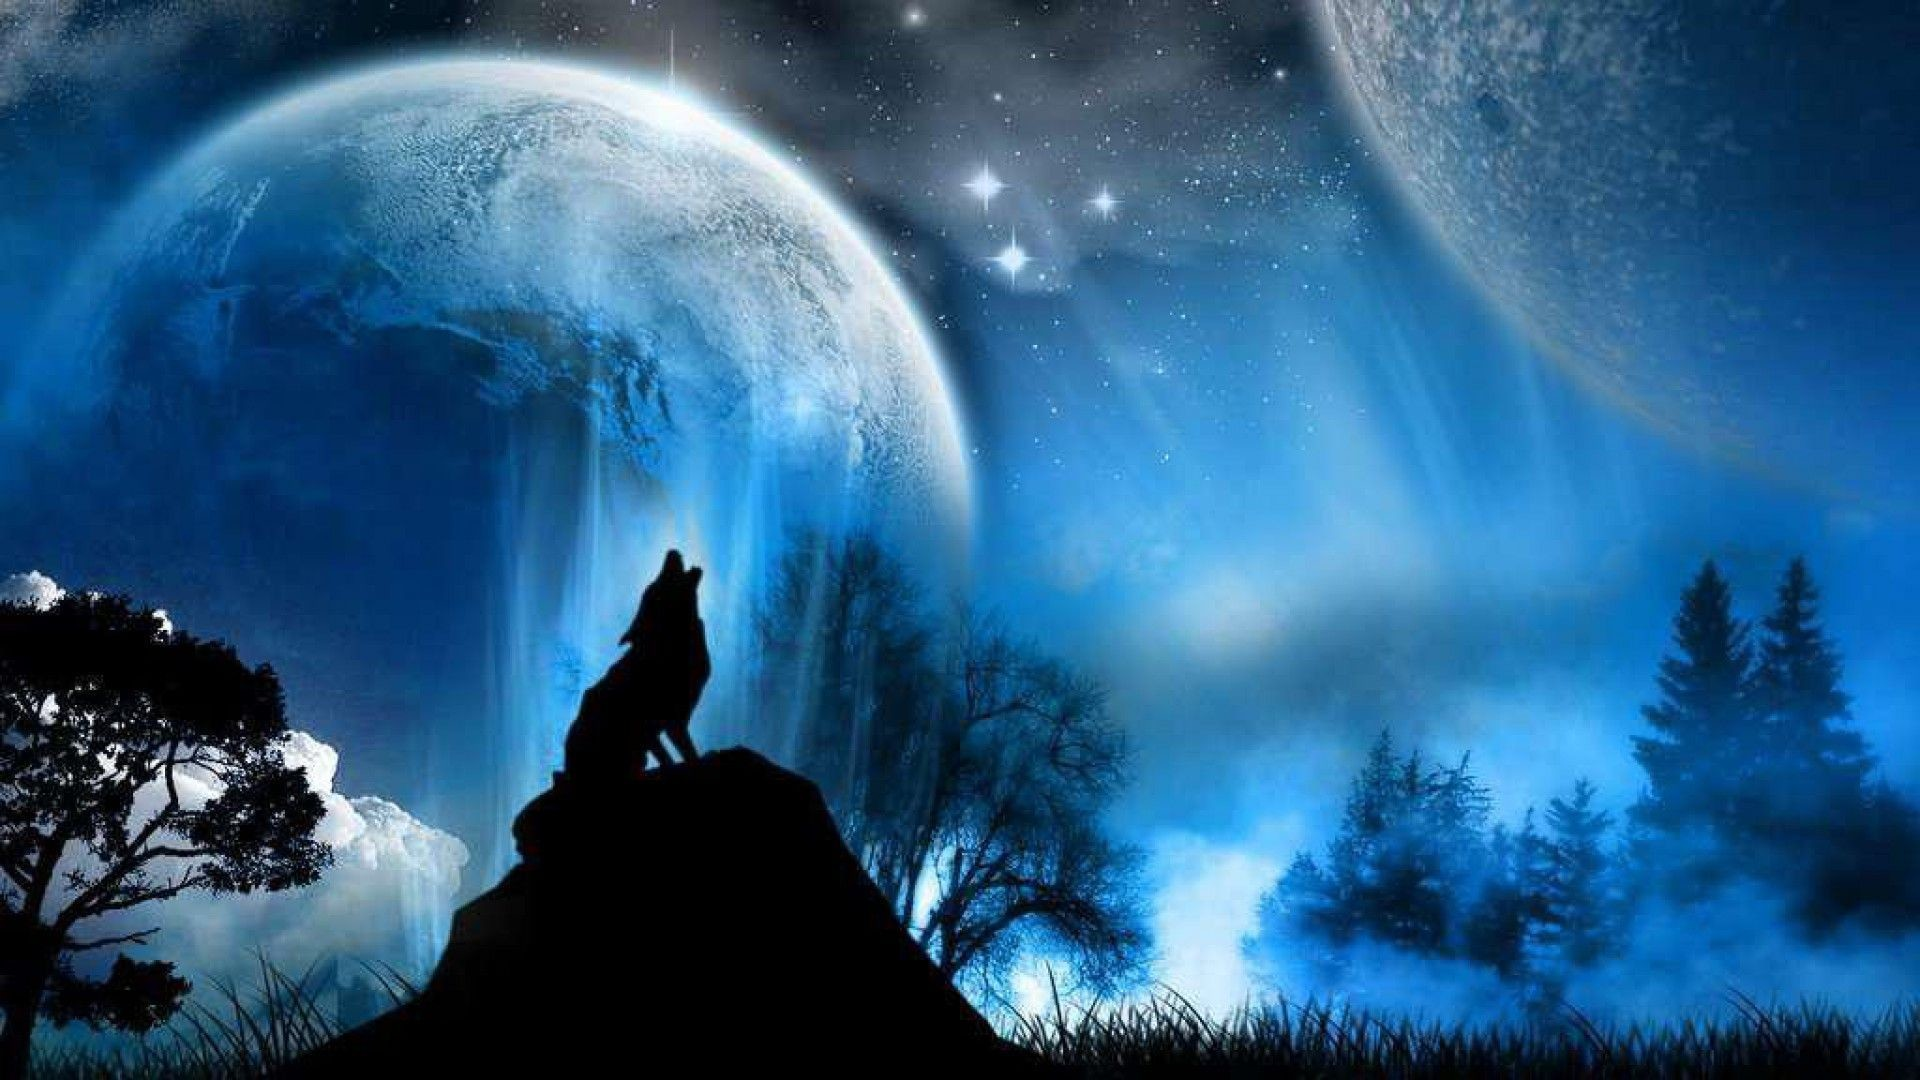 Only the best free epic wolf wallpapers you can find online! Epic wolf  wallpapers and background images for desktop, iPhone, Android and any  screen …